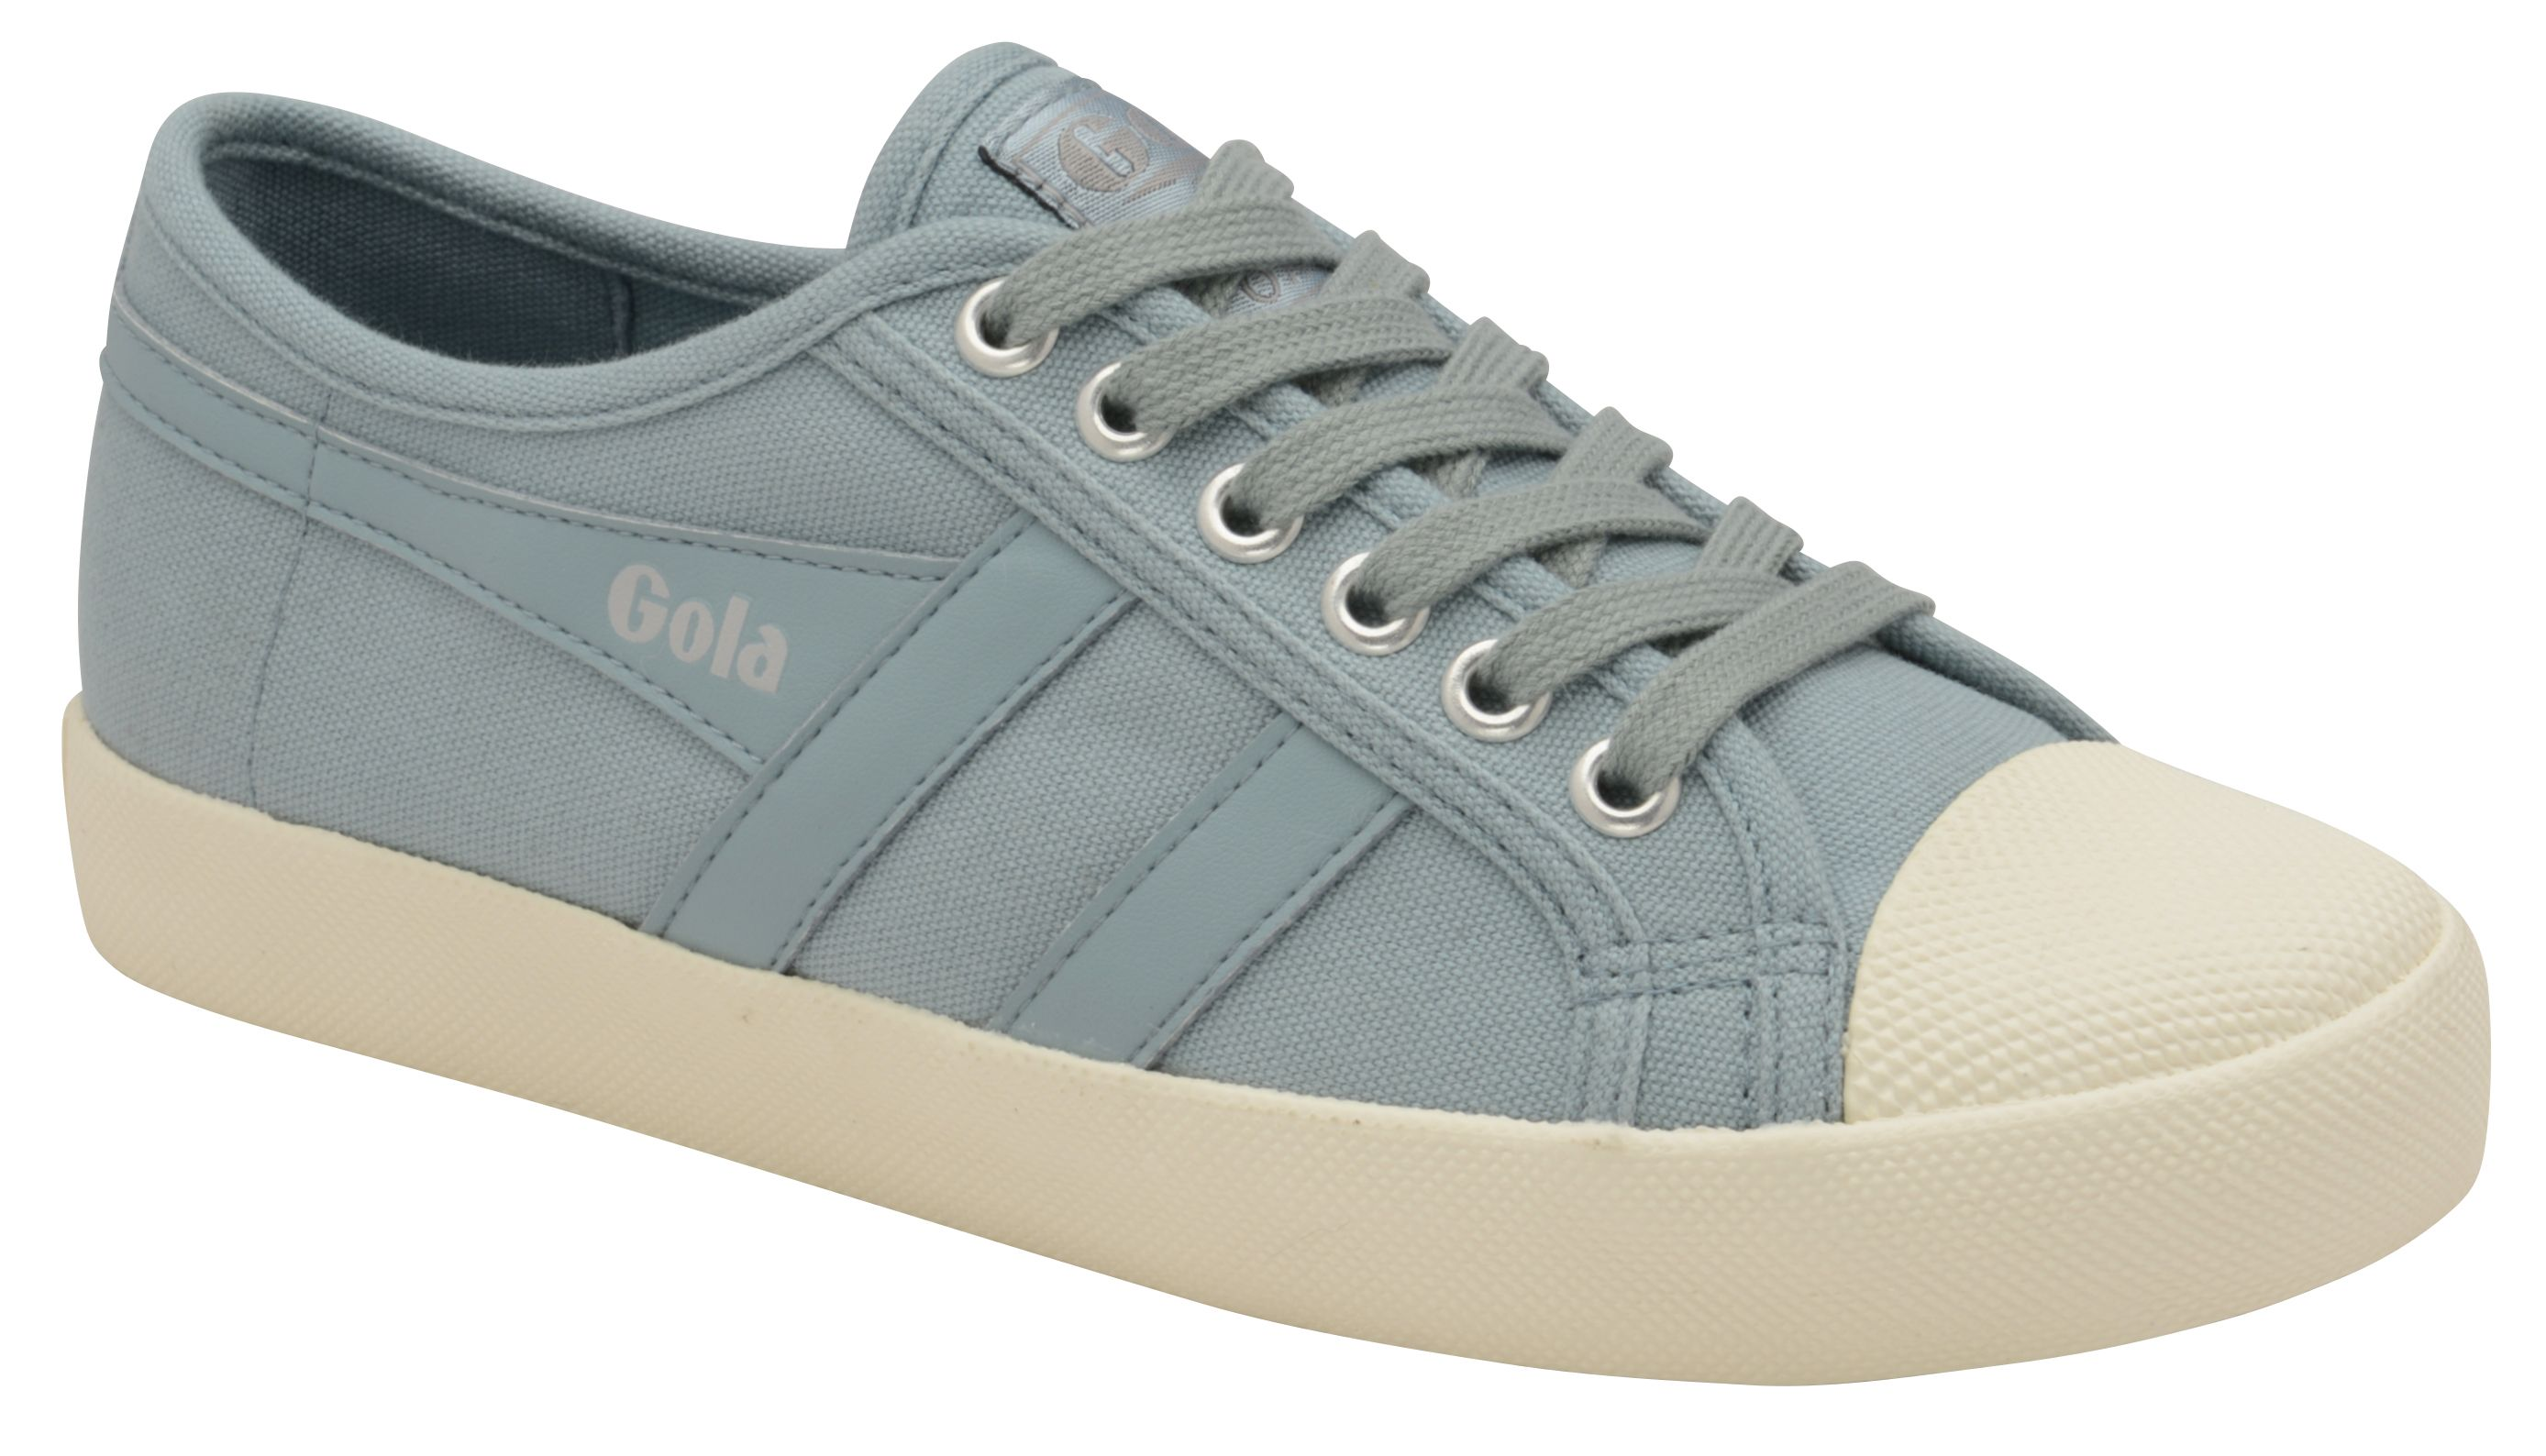 Gola Coaster Lace Up Trainers, Sky Blue